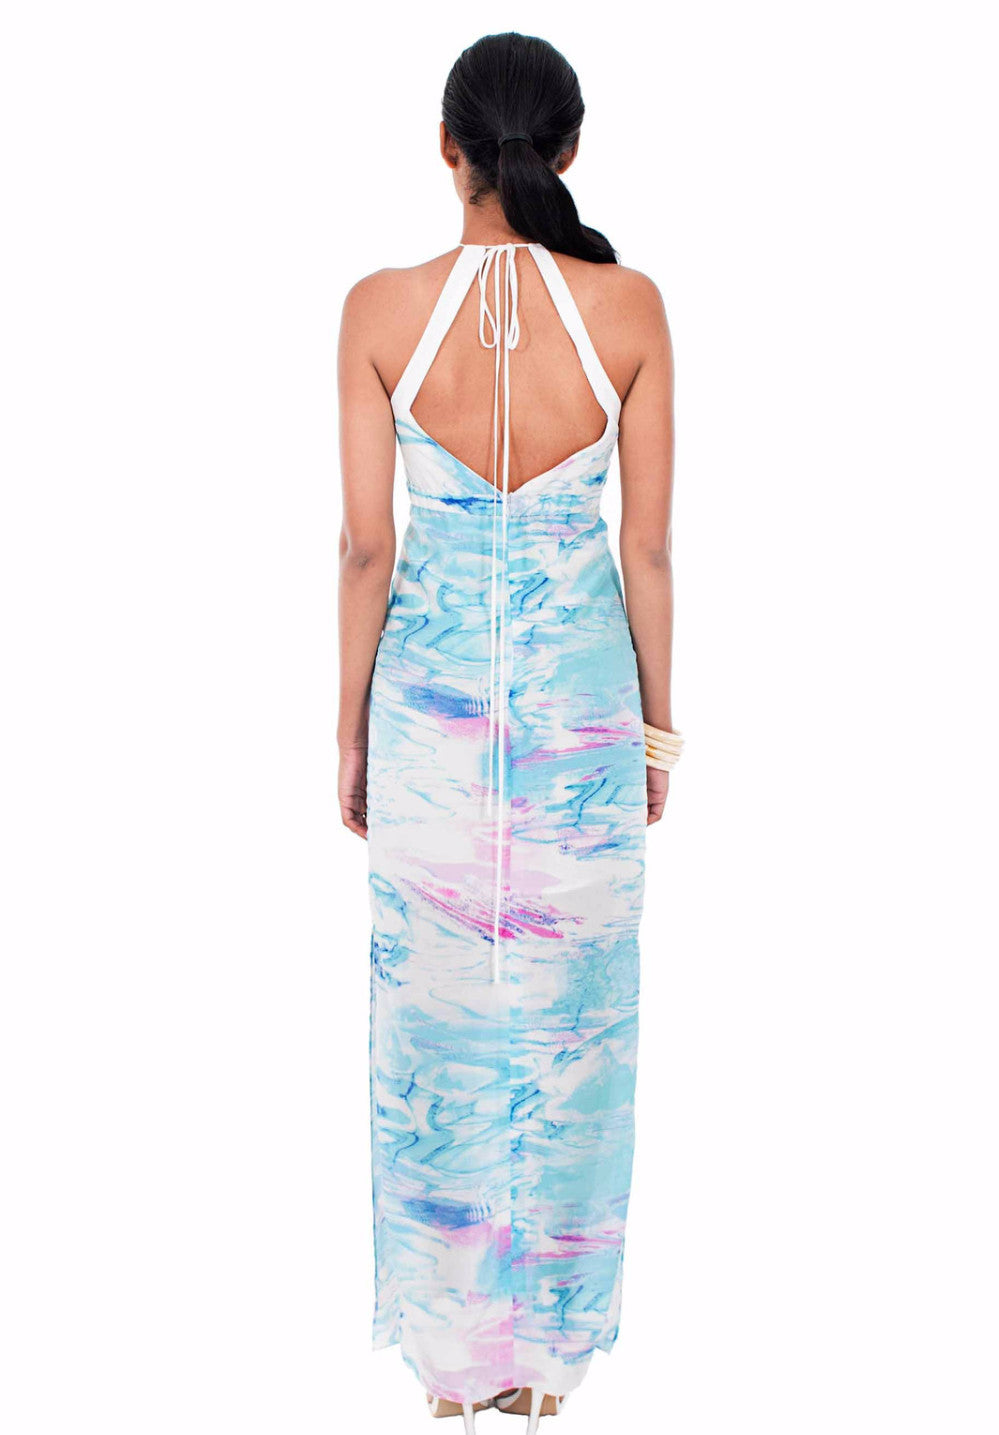 Cayman Water High Neck Silk Dress by Isy B. Design Back View on model